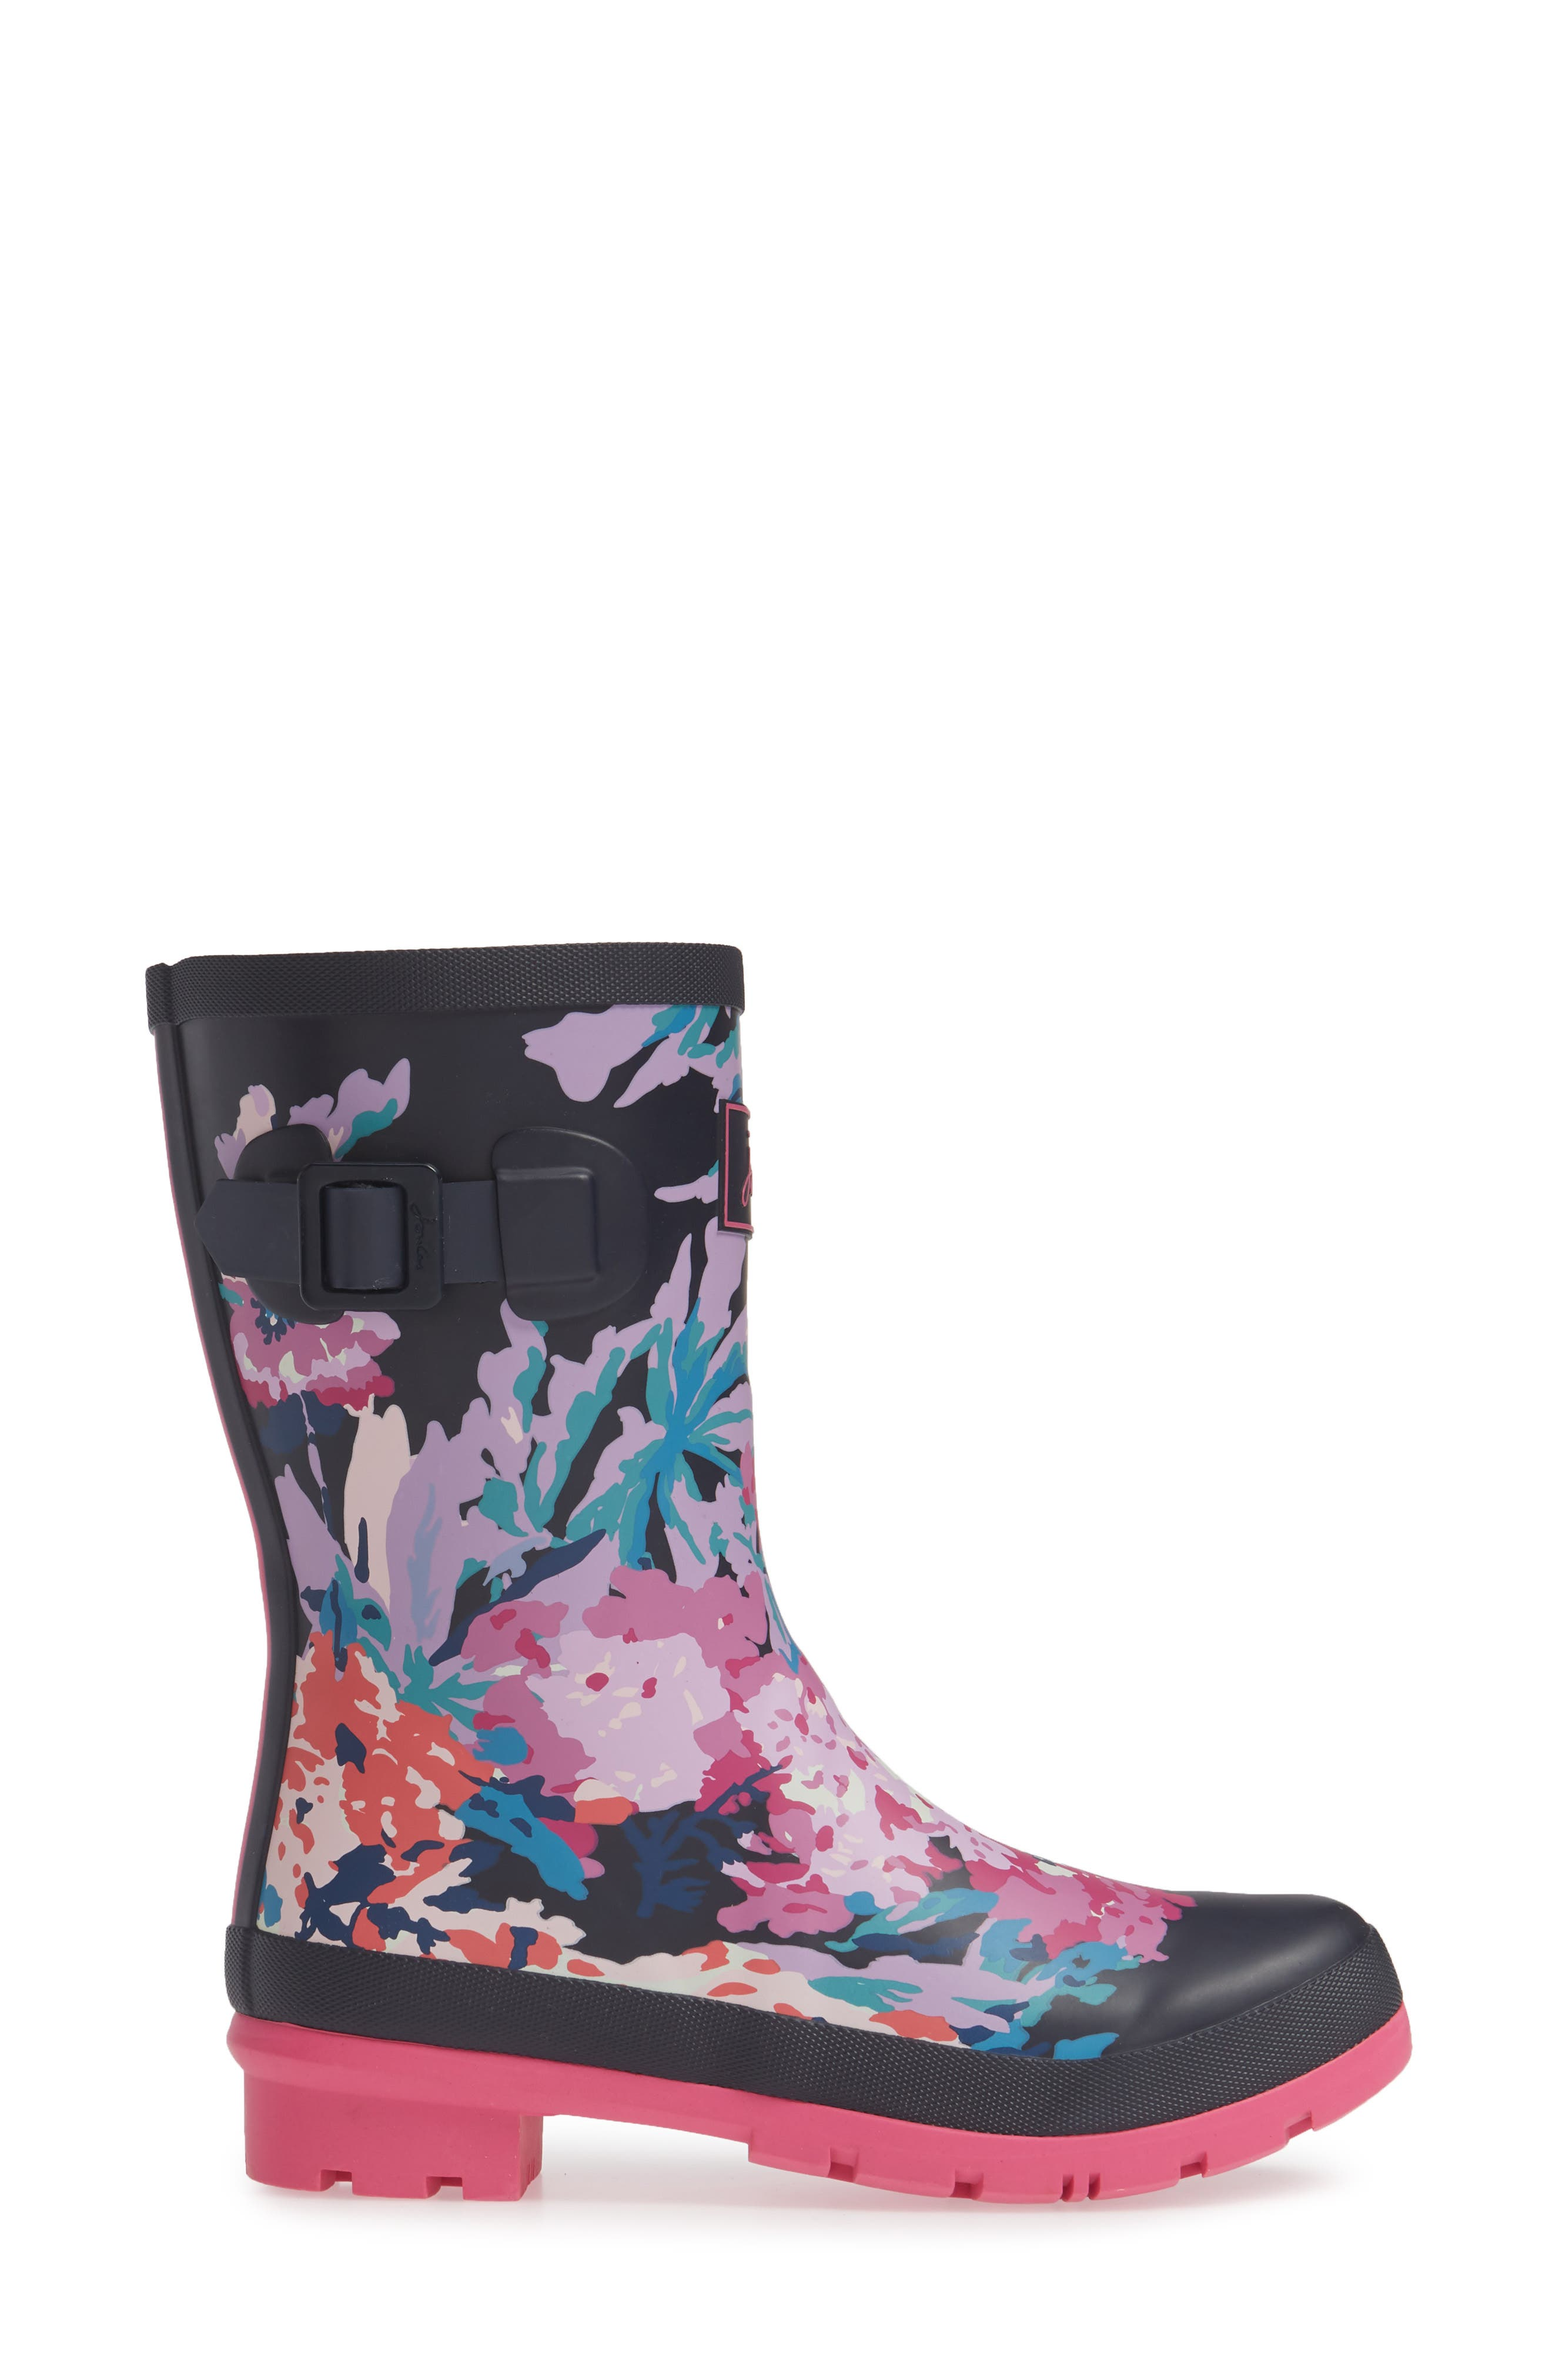 JOULES, 'Molly' Rain Boot, Alternate thumbnail 3, color, NAVY ALL OVER FLORAL